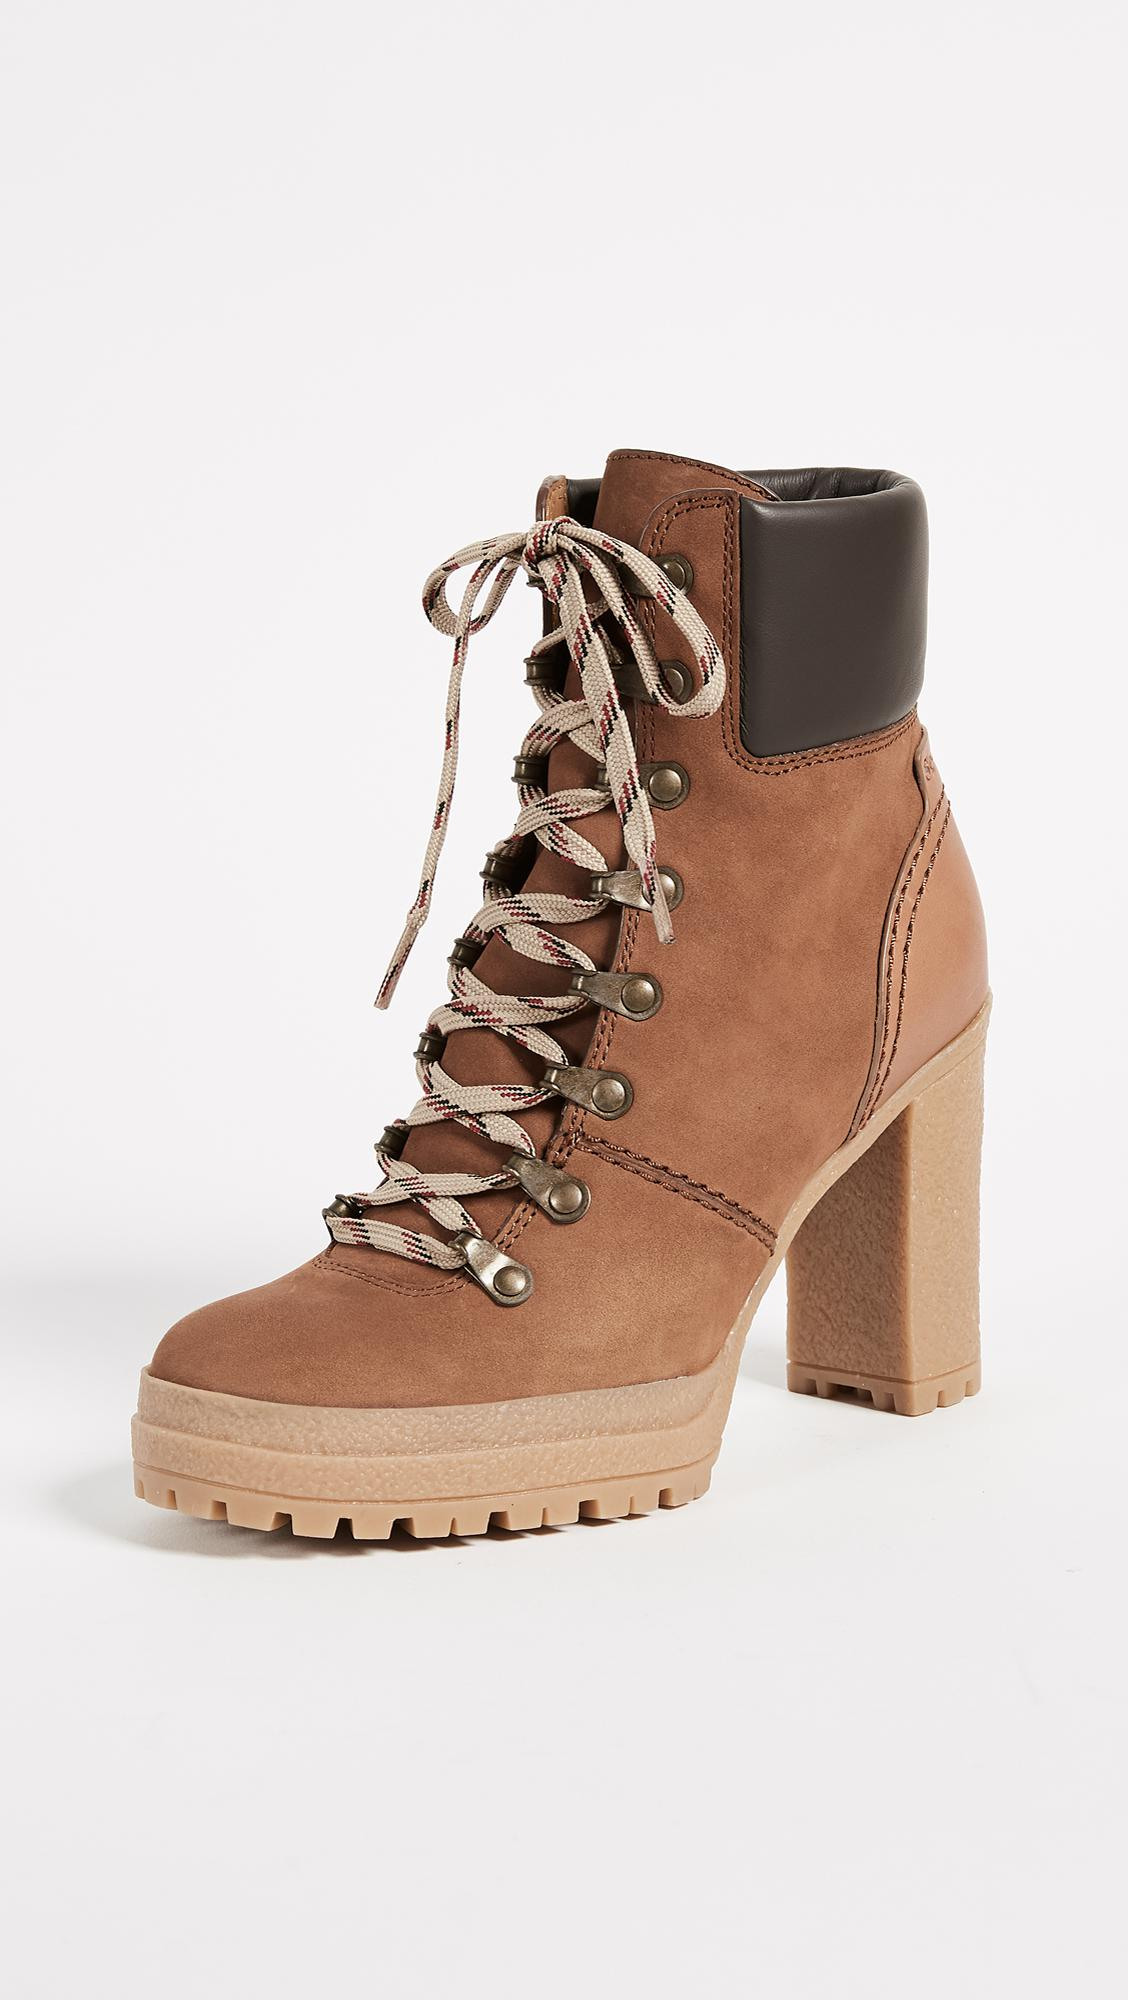 b28e6df0bce7 Lyst - See By Chloé Eileen Lace Up Boots in Brown